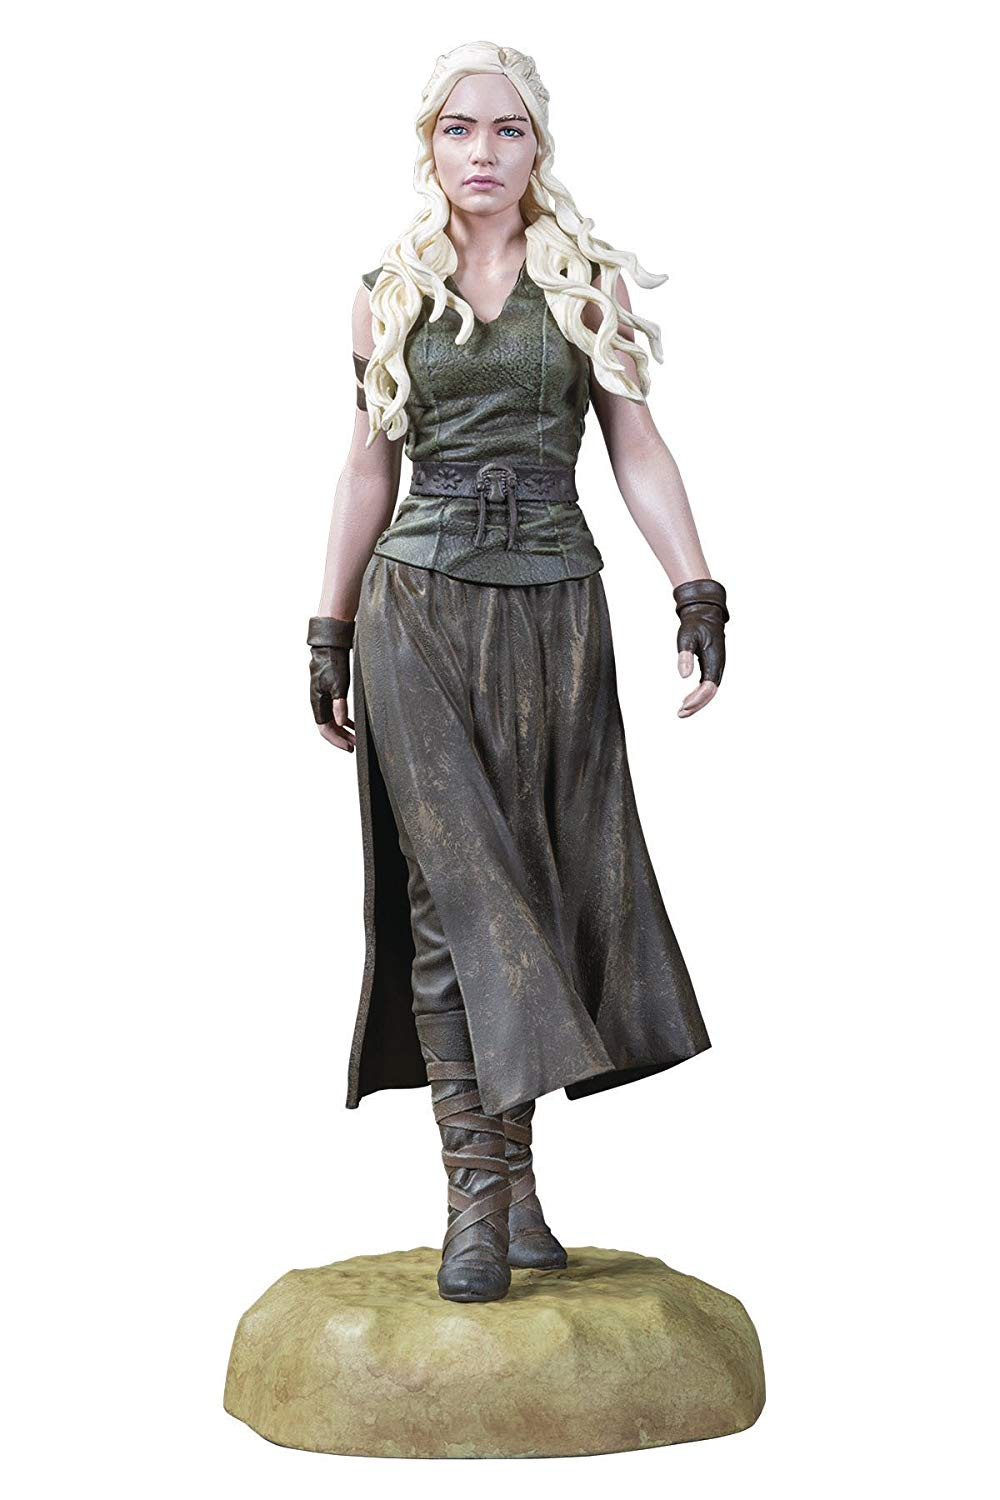 GAME OF THRONES - Daenerys Targaryen Mother of Dragons statula| 20cm